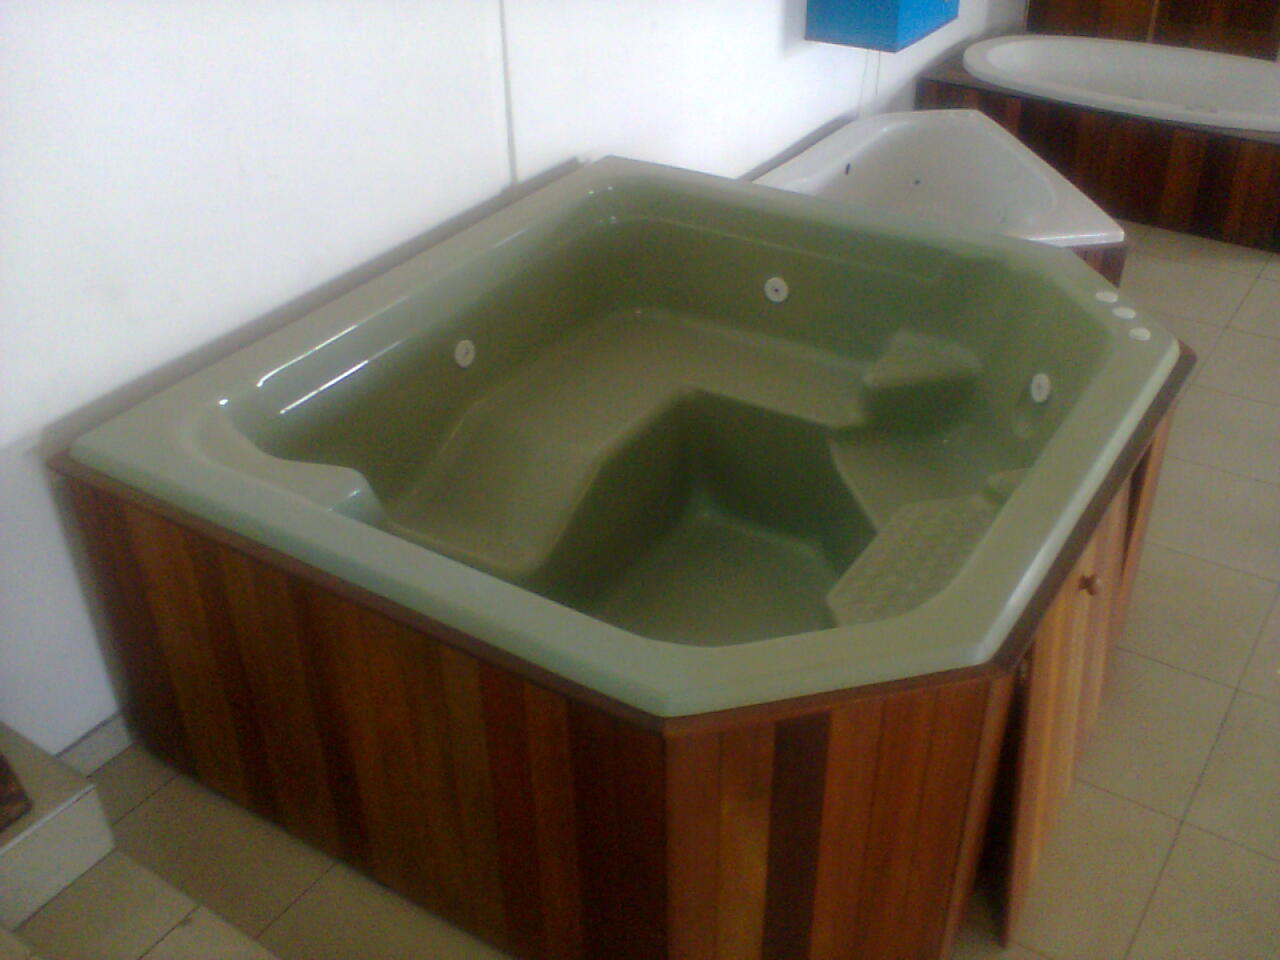 Wet Scrubbers moreover Blowburner01 moreover Installing Custom Build Wooden Surrounded Jacuzziinstalling Custom Build Wooden Surrounded Jacuzzi besides Air Flow Fluidics print furthermore 160727645130. on venturi blower